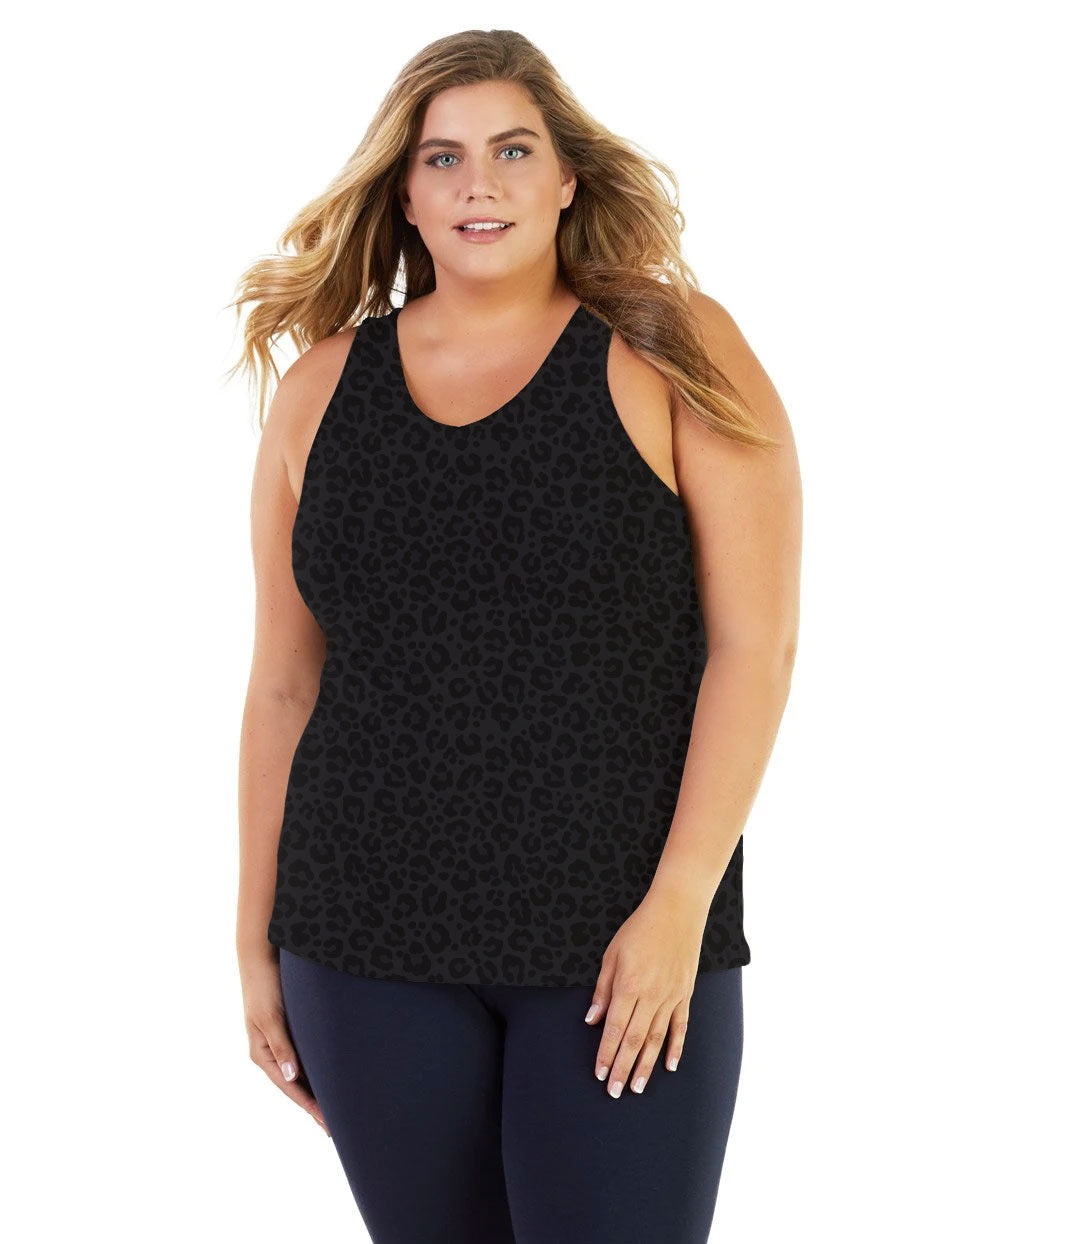 Stretch Naturals Long Support Tank Deep Leopard Print-Tops Tanks-Hop Wo Trading Co Ltd-XL-Deep Leopard Print-JunoActive